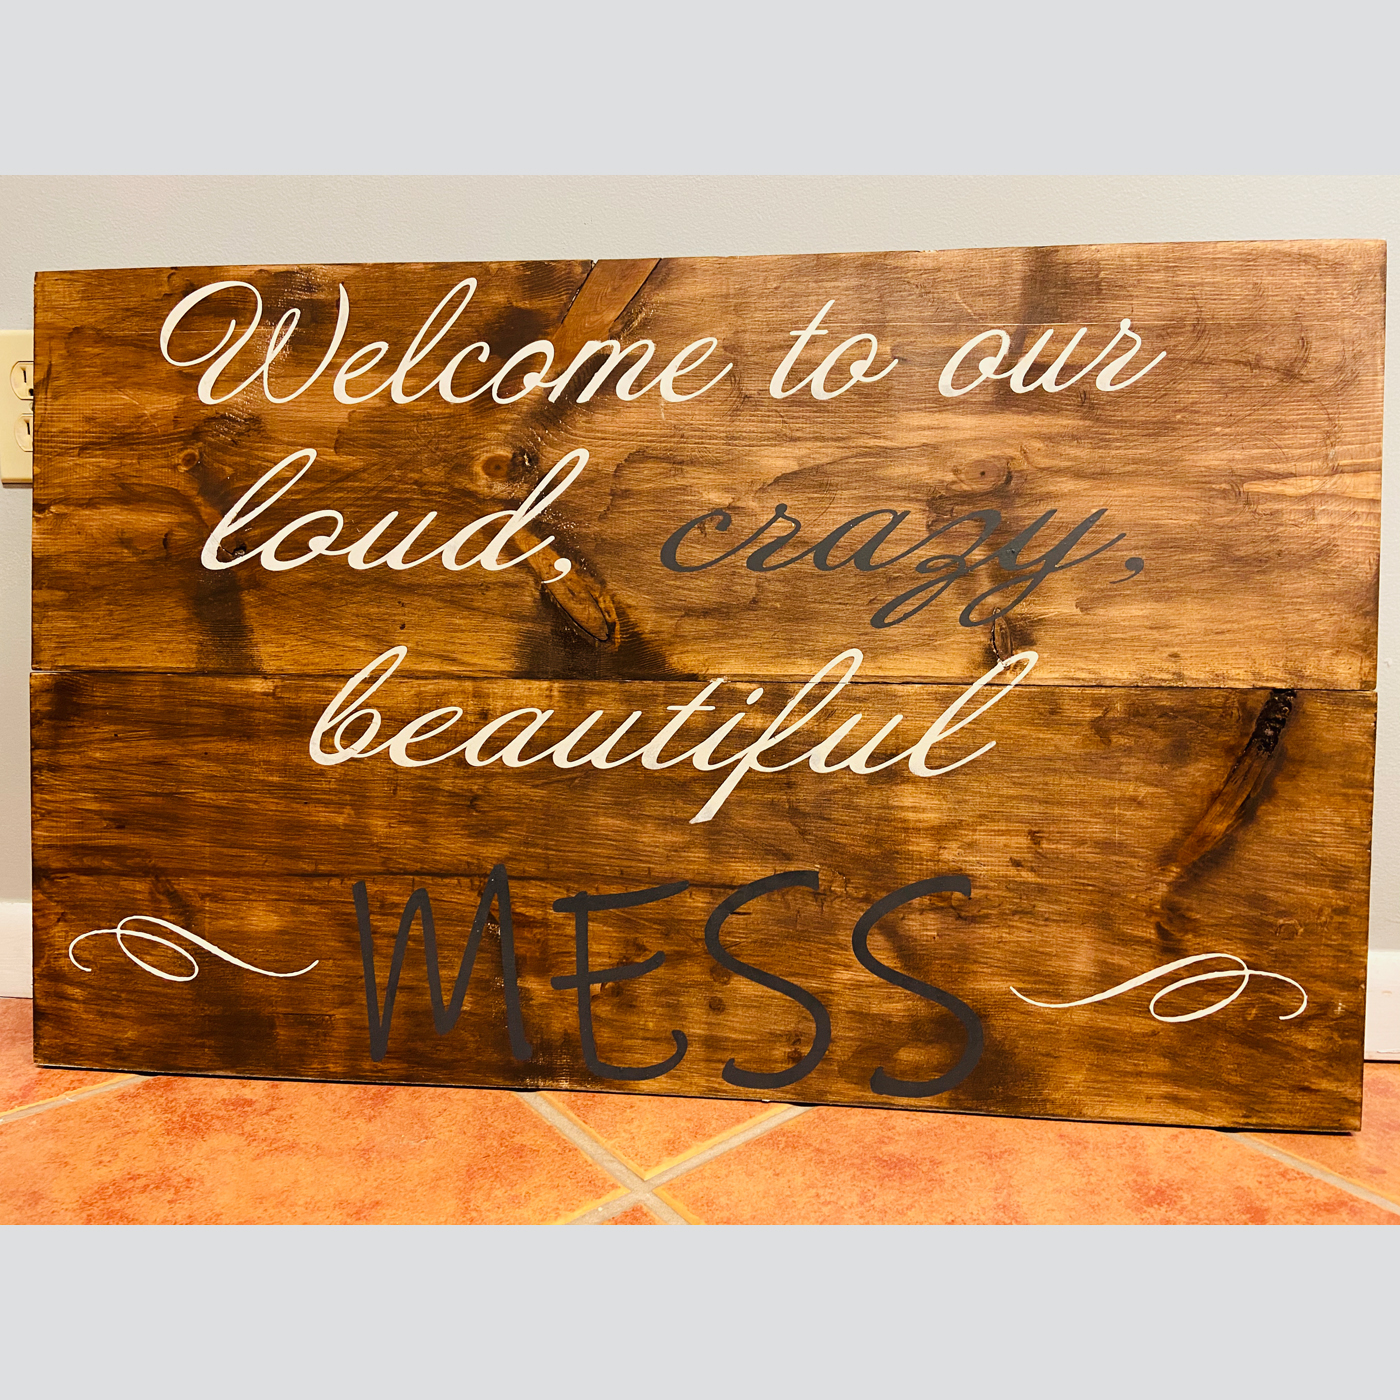 Welcome to our Beautiful Mess DIY wood sign project